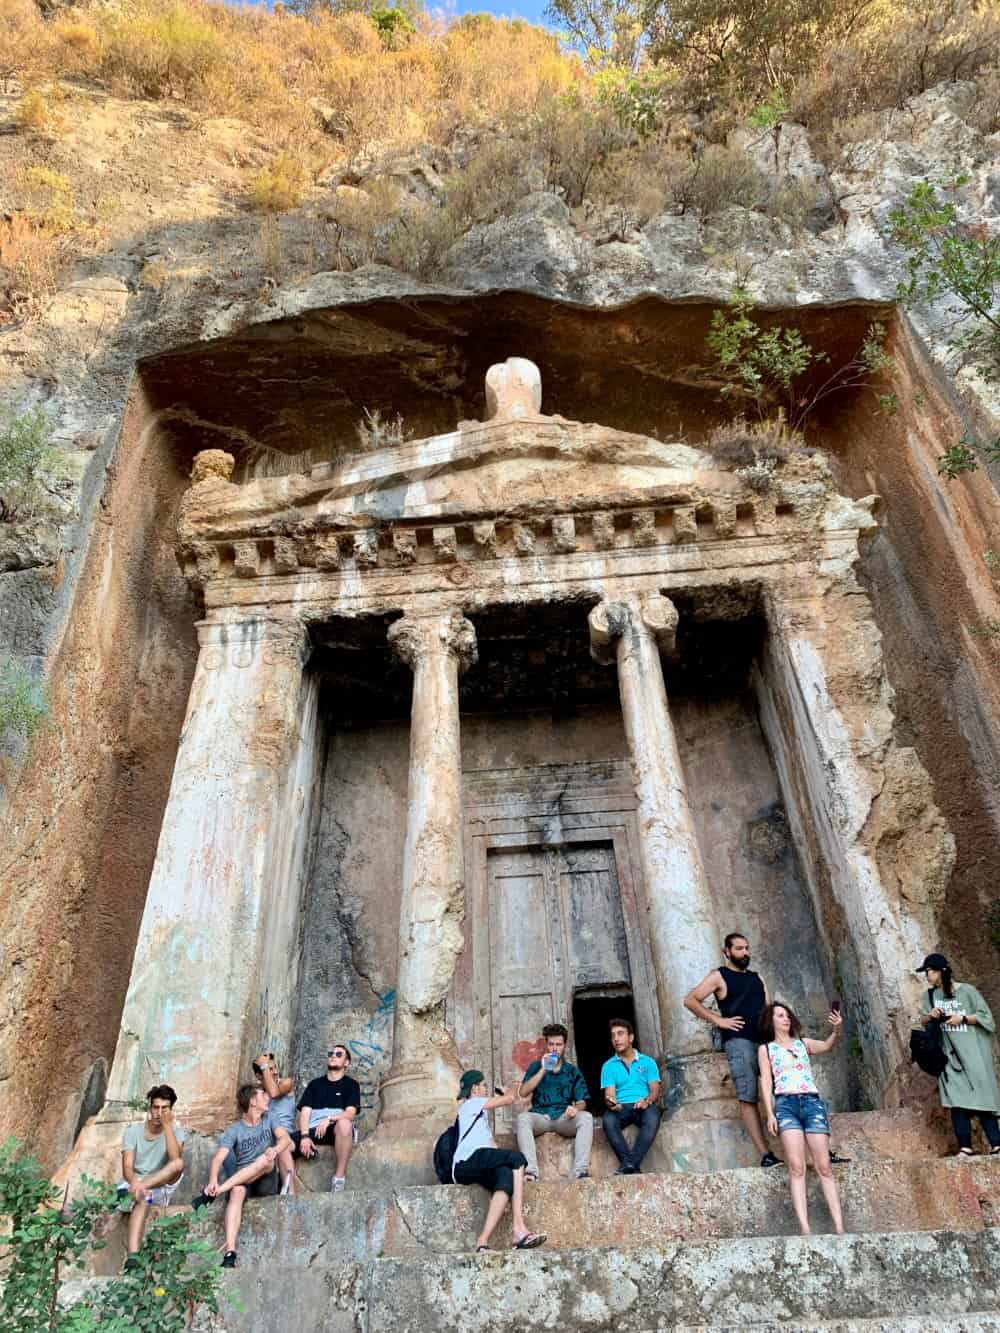 Ancient Lycian tombs, a must when visiting the Turquoise Coast - planning a 7-day Turkey itinerary